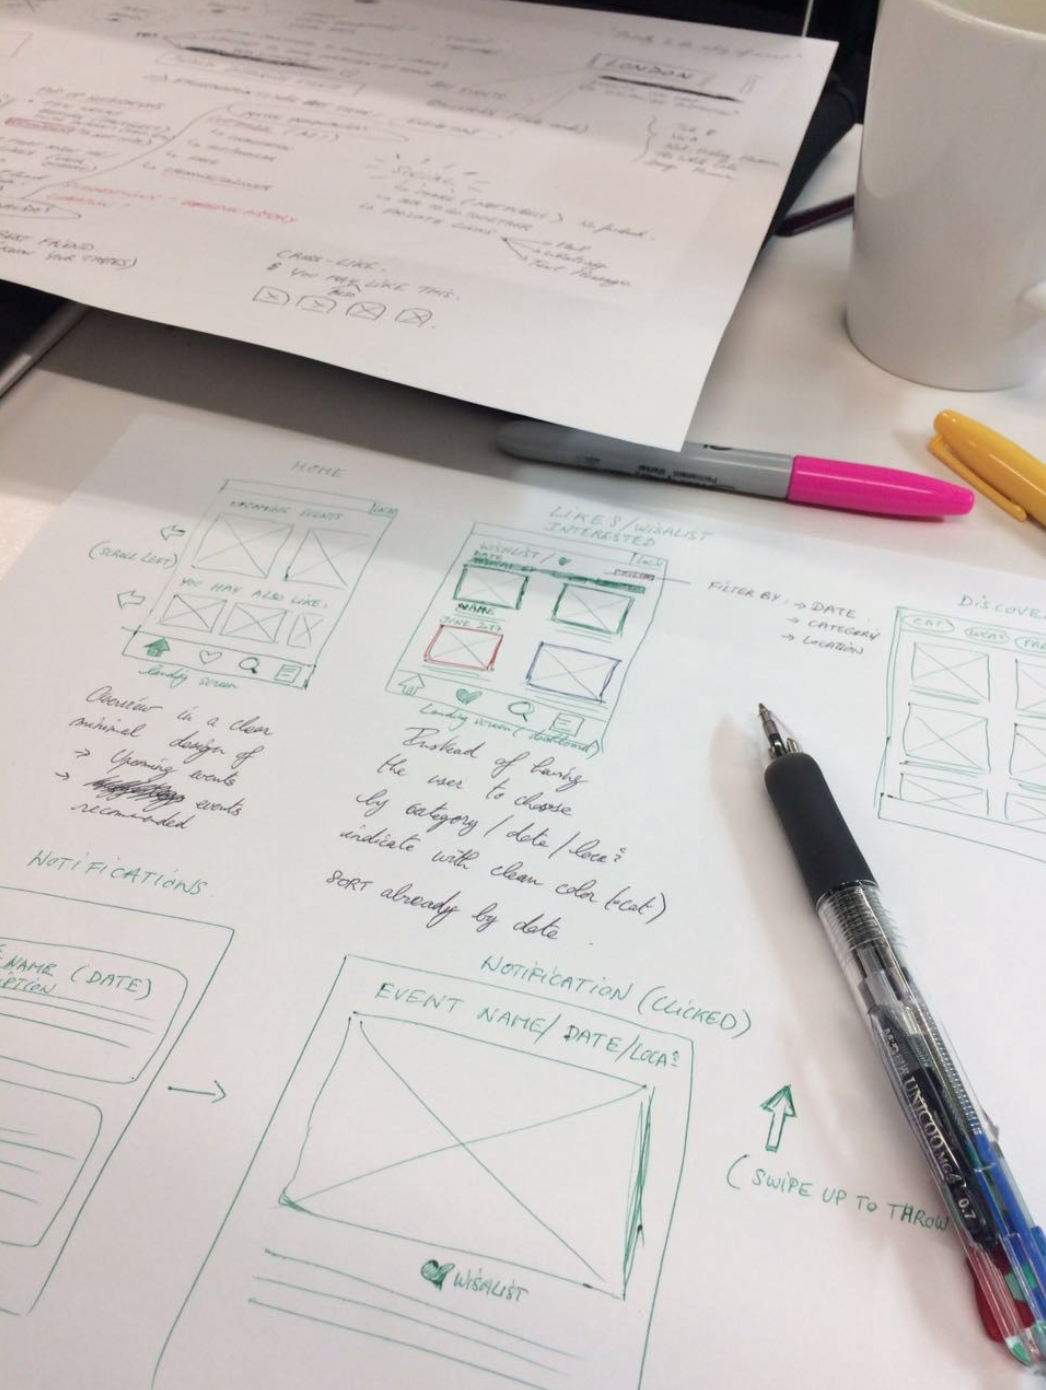 Early sketching/wireframing